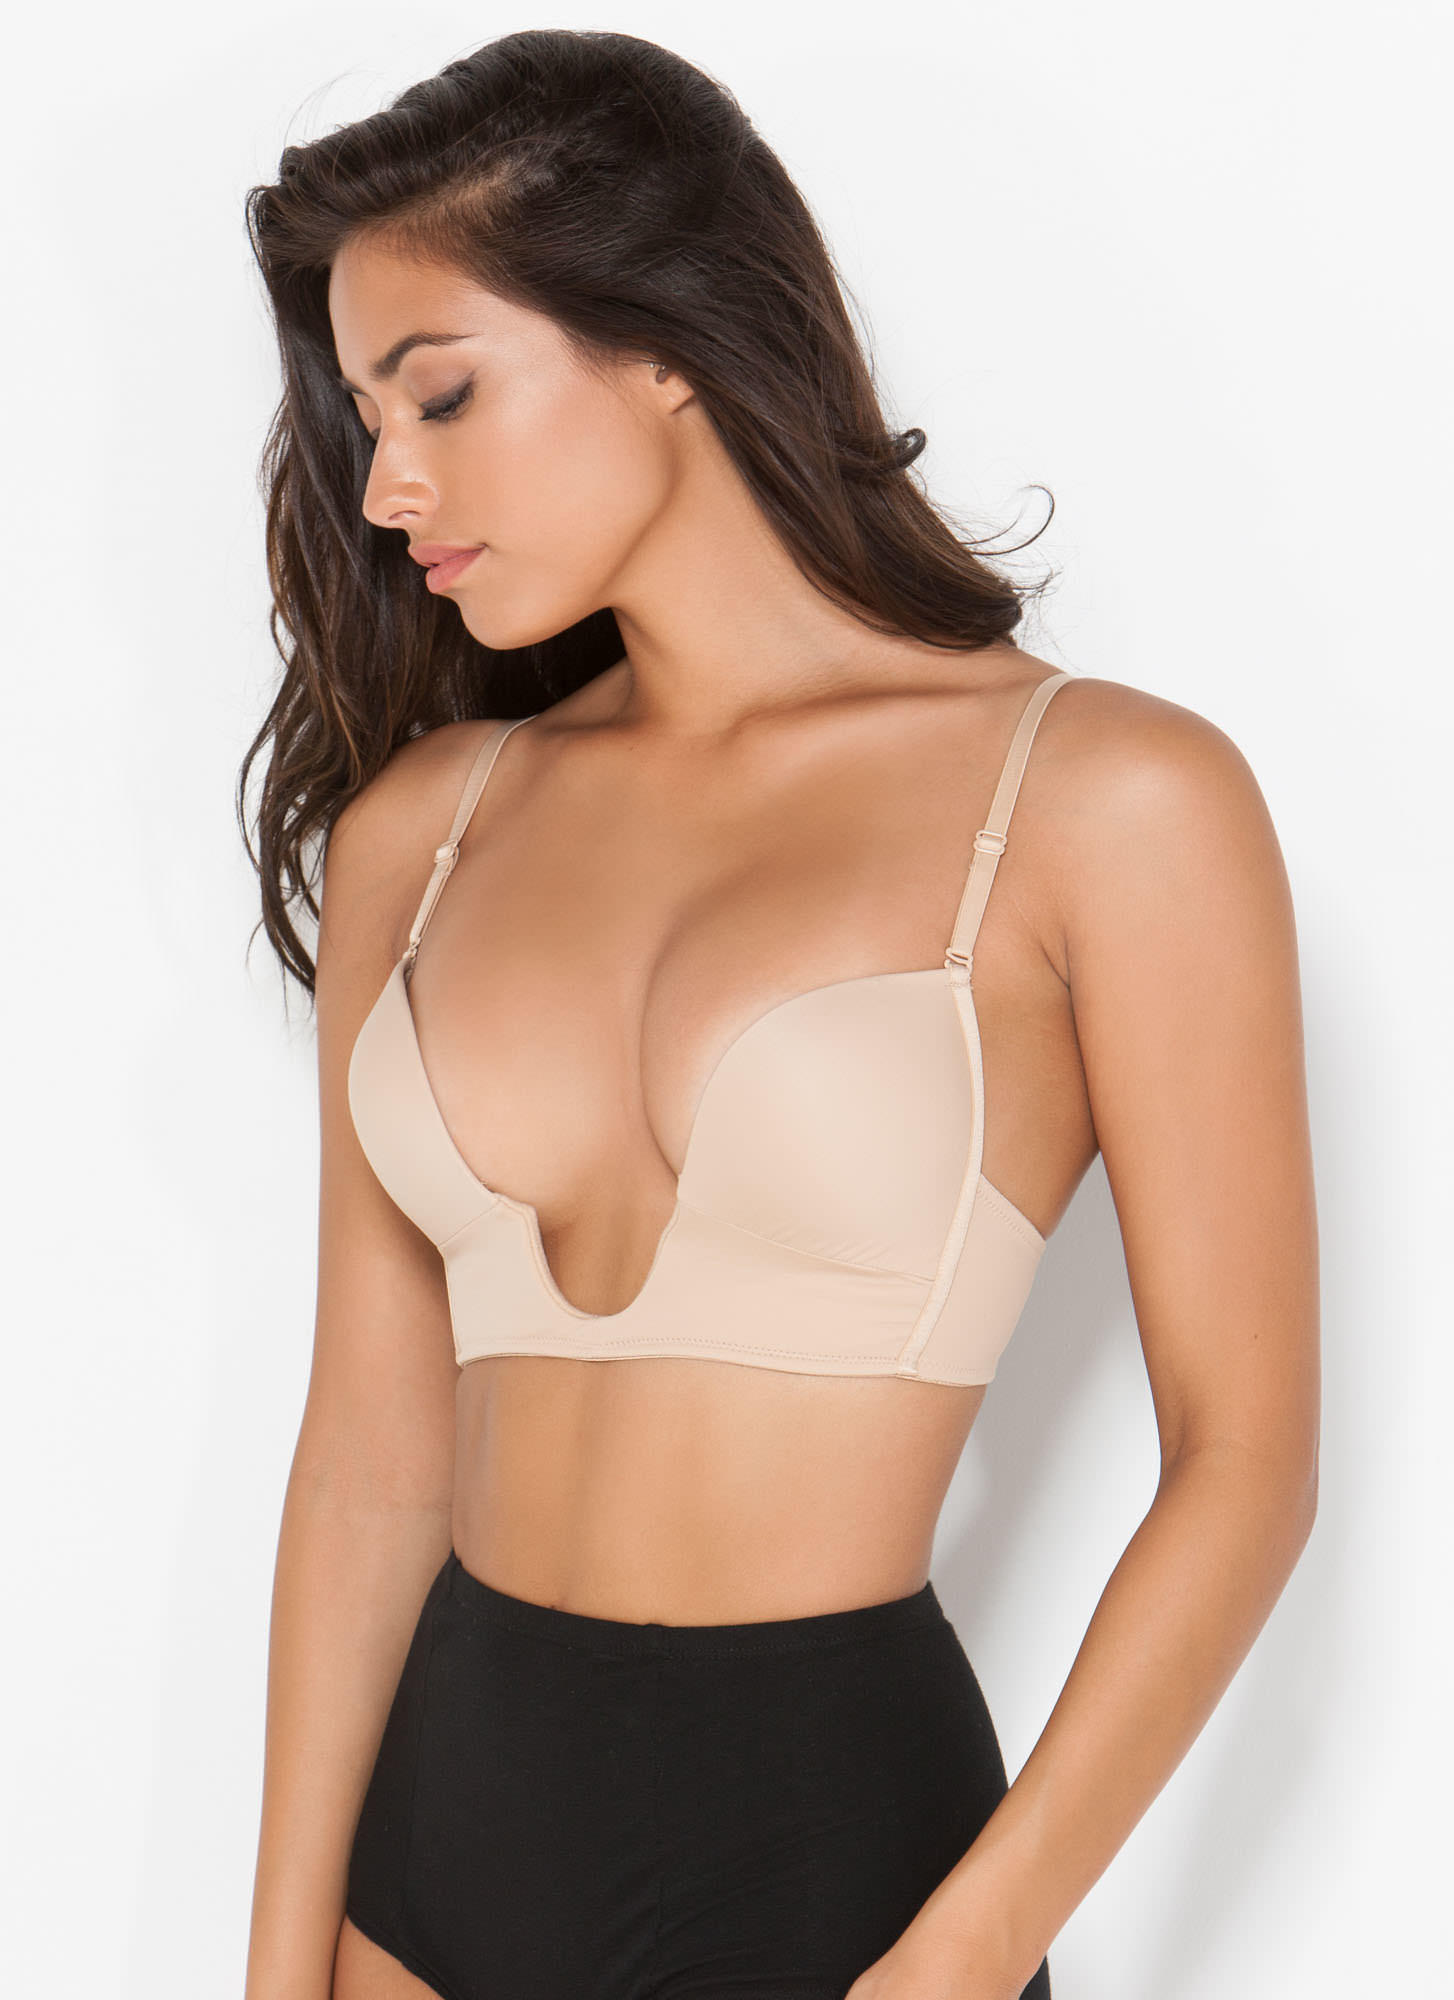 Deep V Plunging Bra Gojane Com From Gojane Other